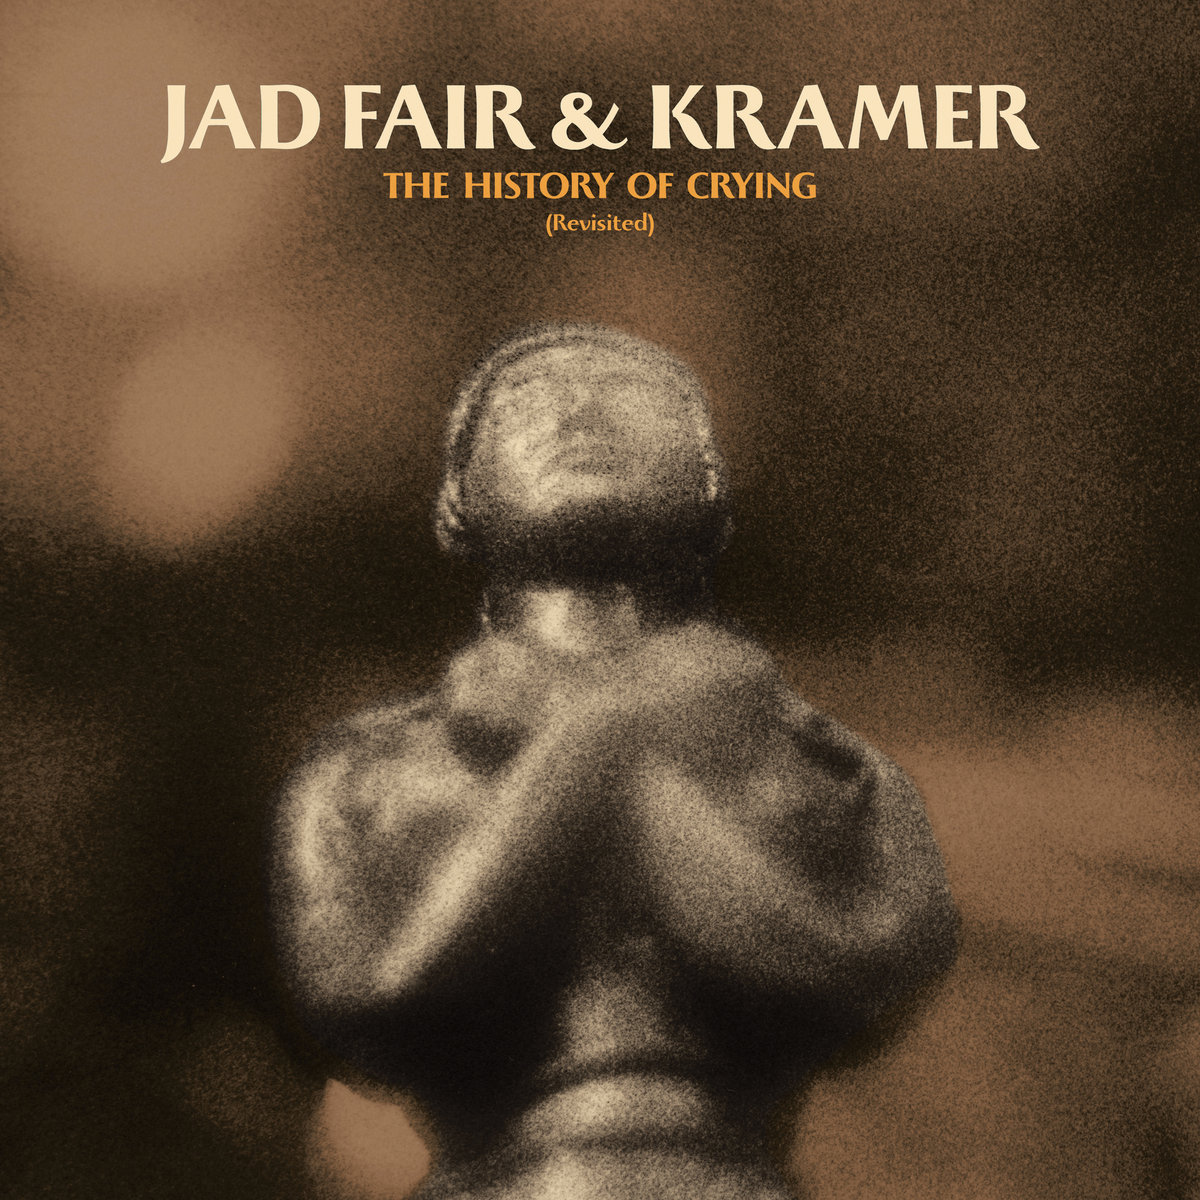 """STEREO EMBERS EXCLUSIVE VIDEO PREMIER – Watch the Title Track Visual from Jad Fair and Kramer's Shimmy-Disc released """"The History of Crying"""""""